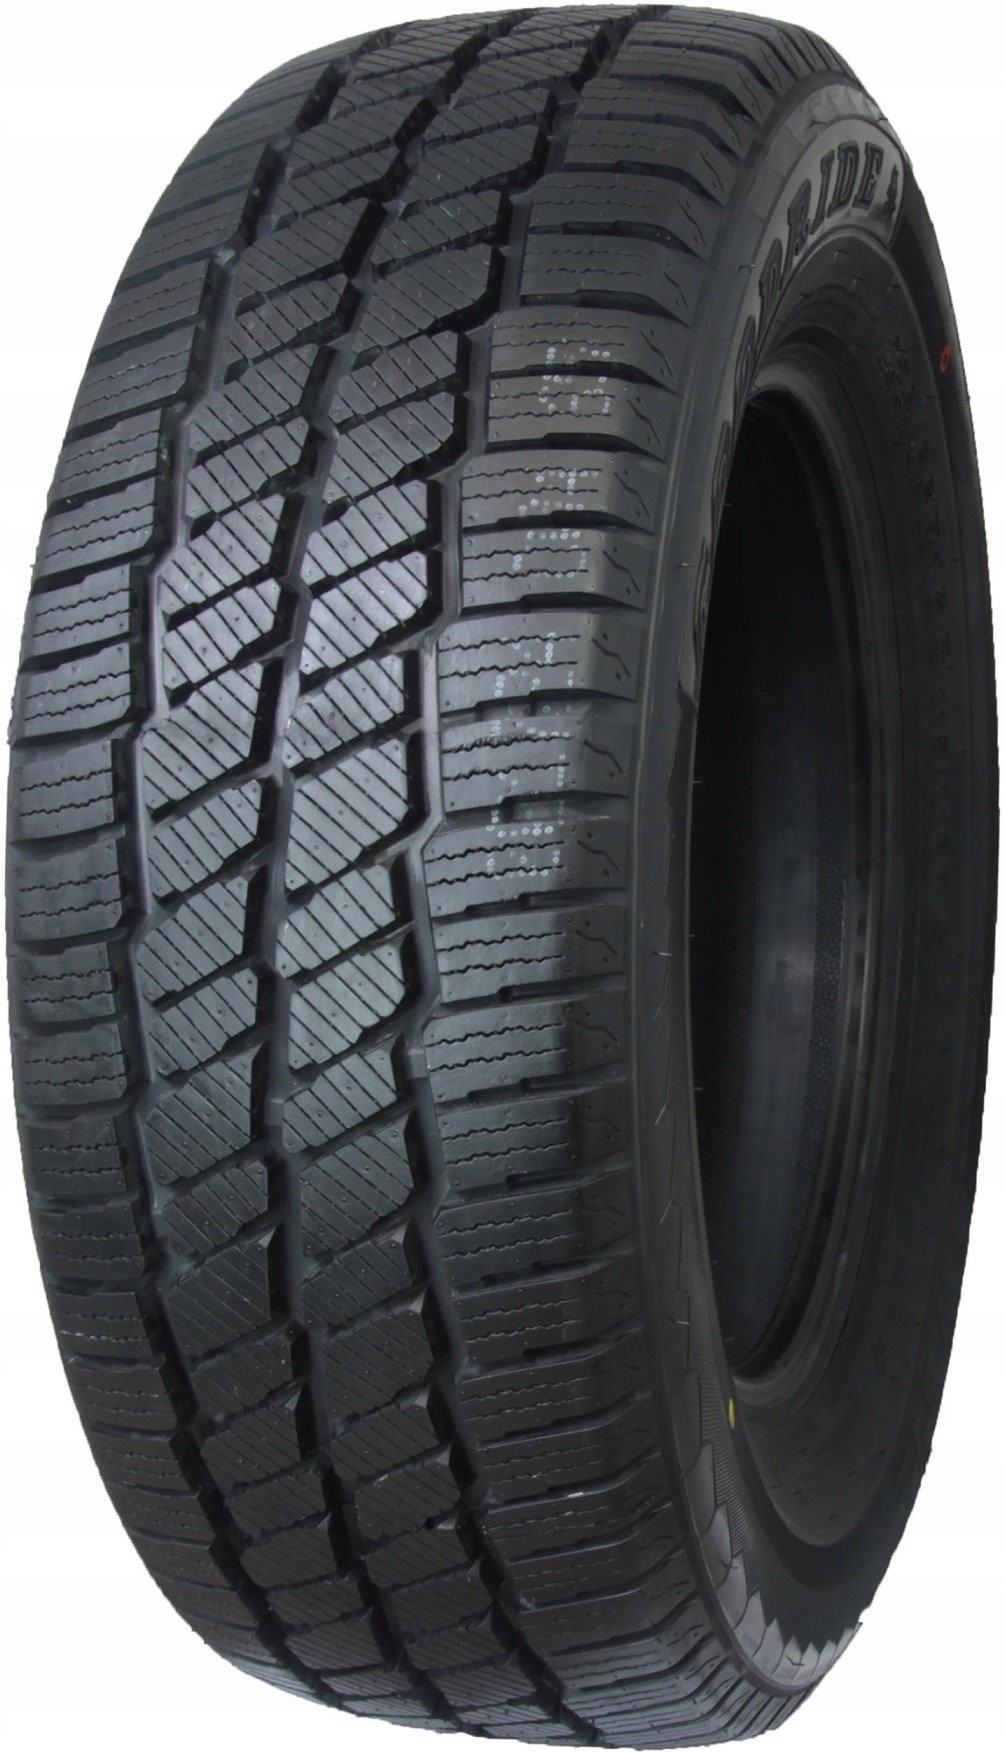 Goodride SW613 All Season 205/70R15 106/104 R C